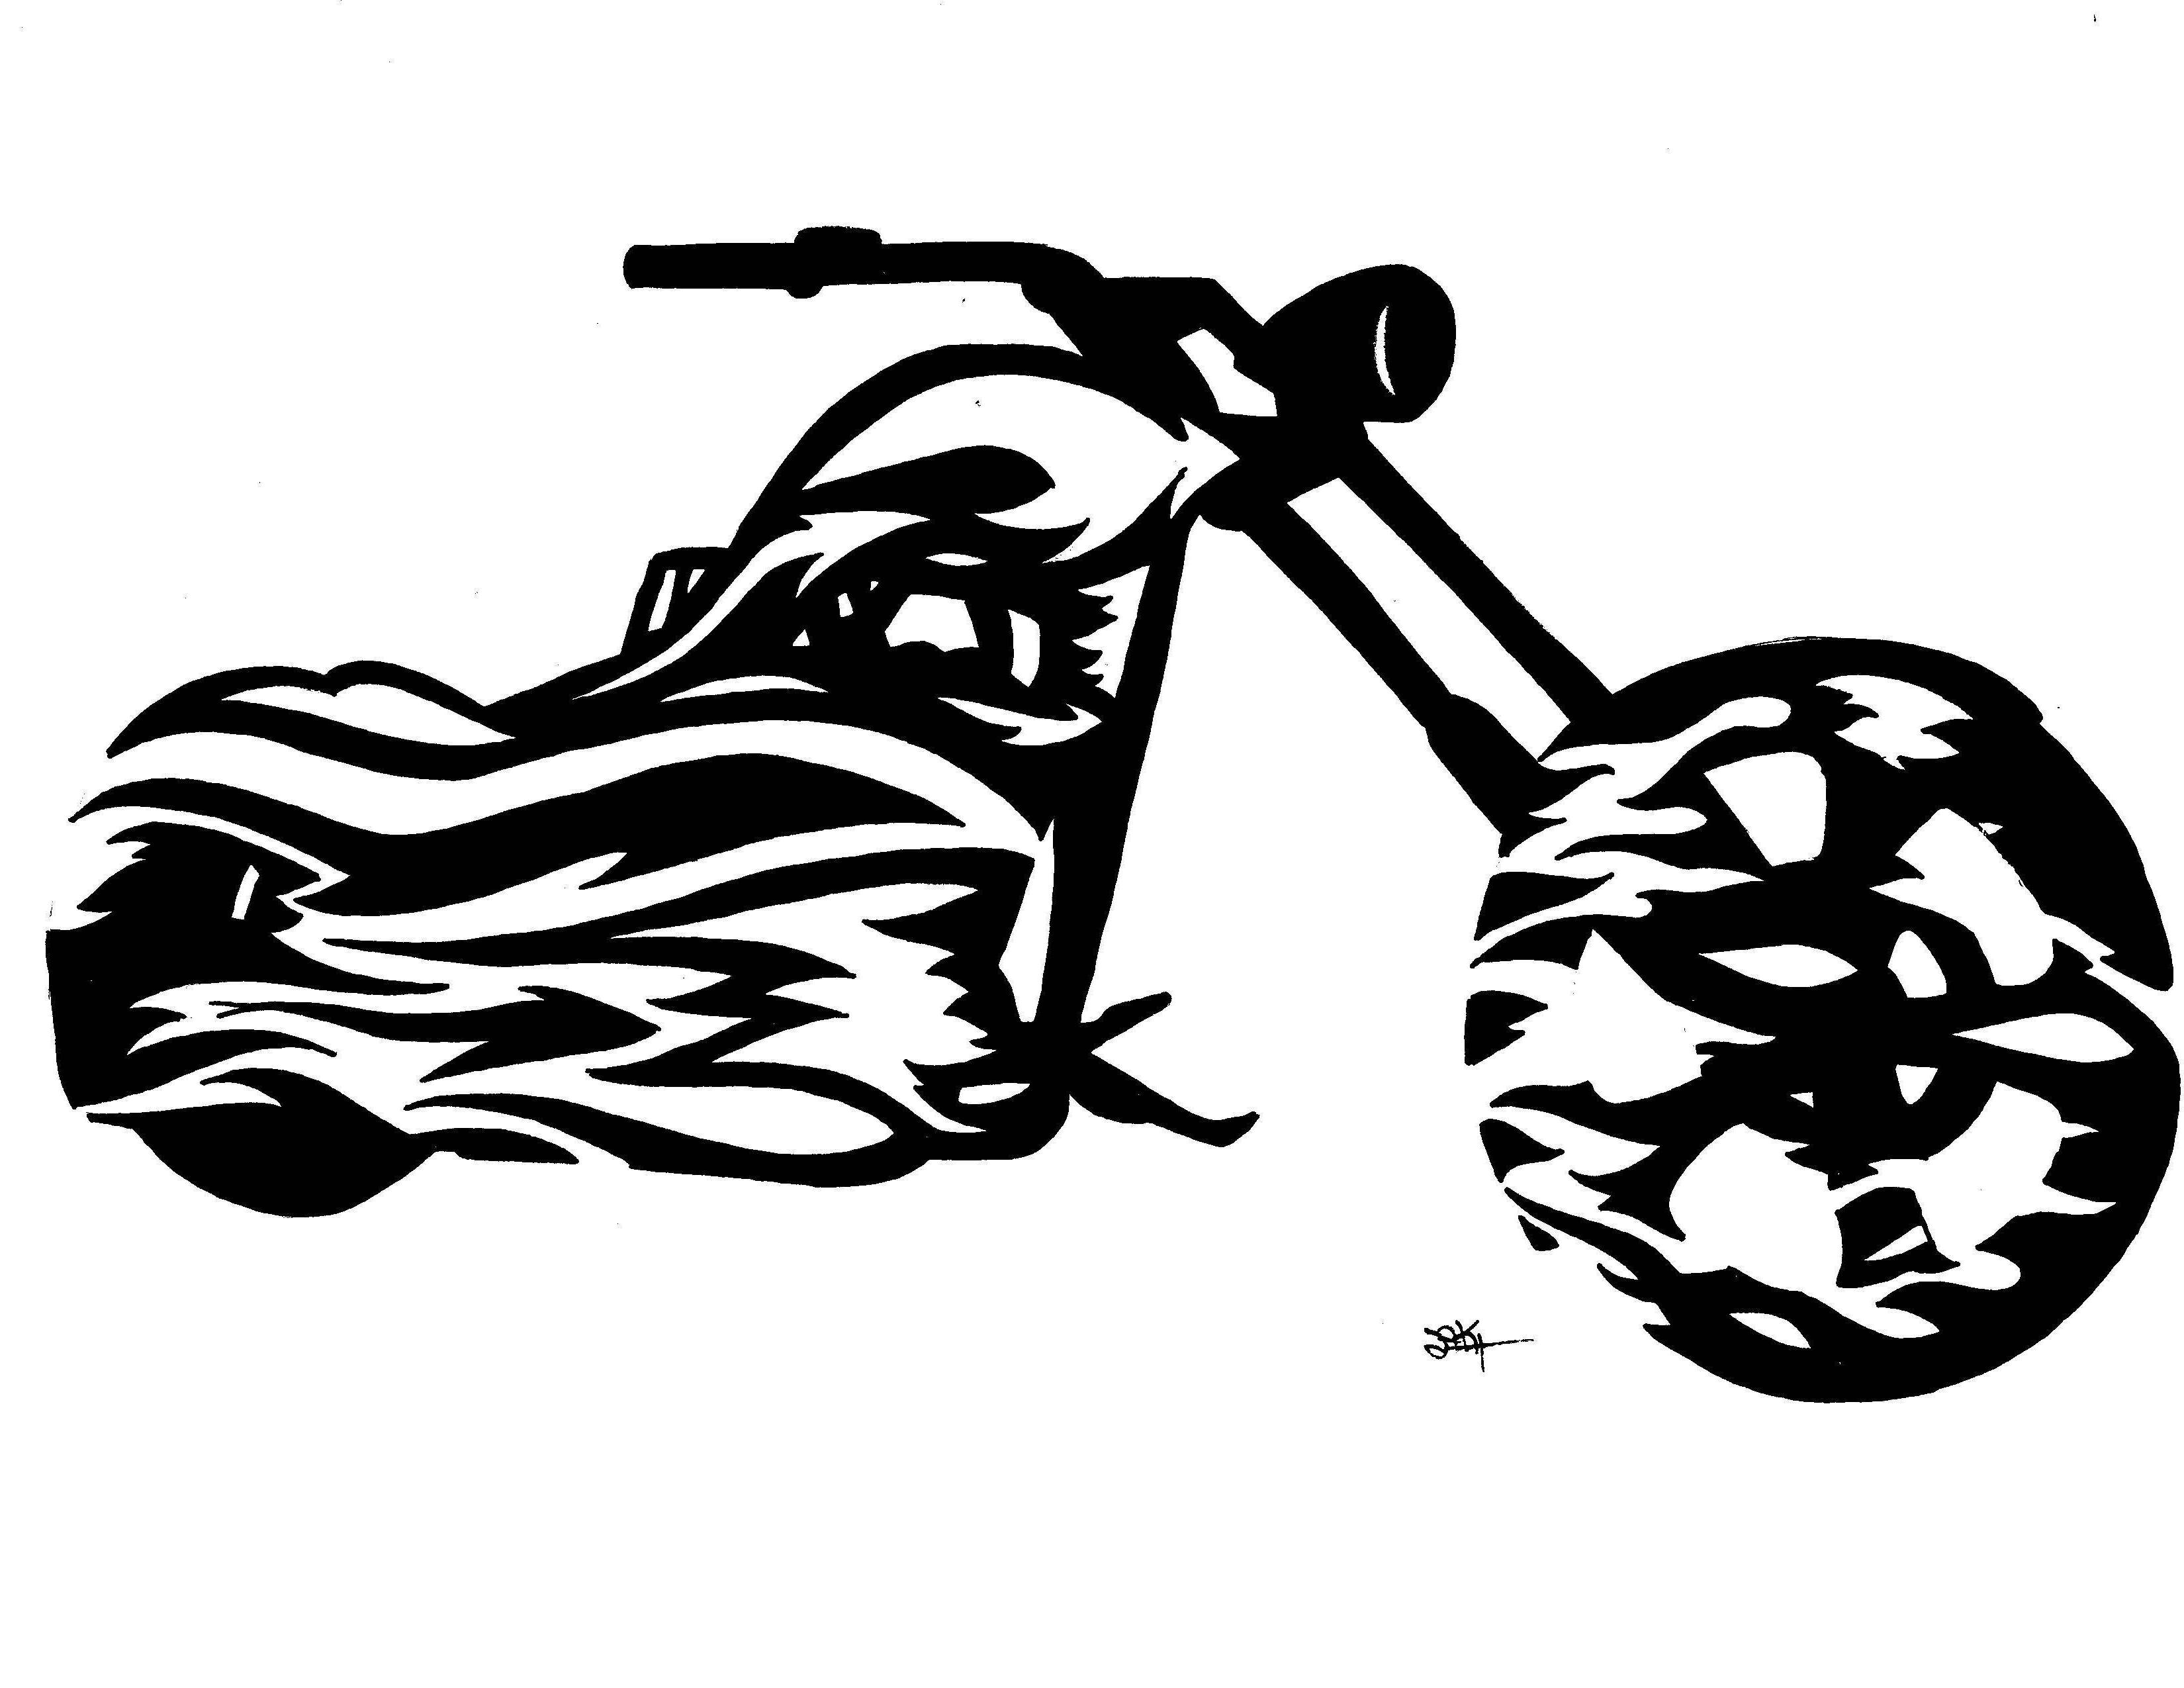 Motorcycle clipart tribal, Motorcycle tribal Transparent